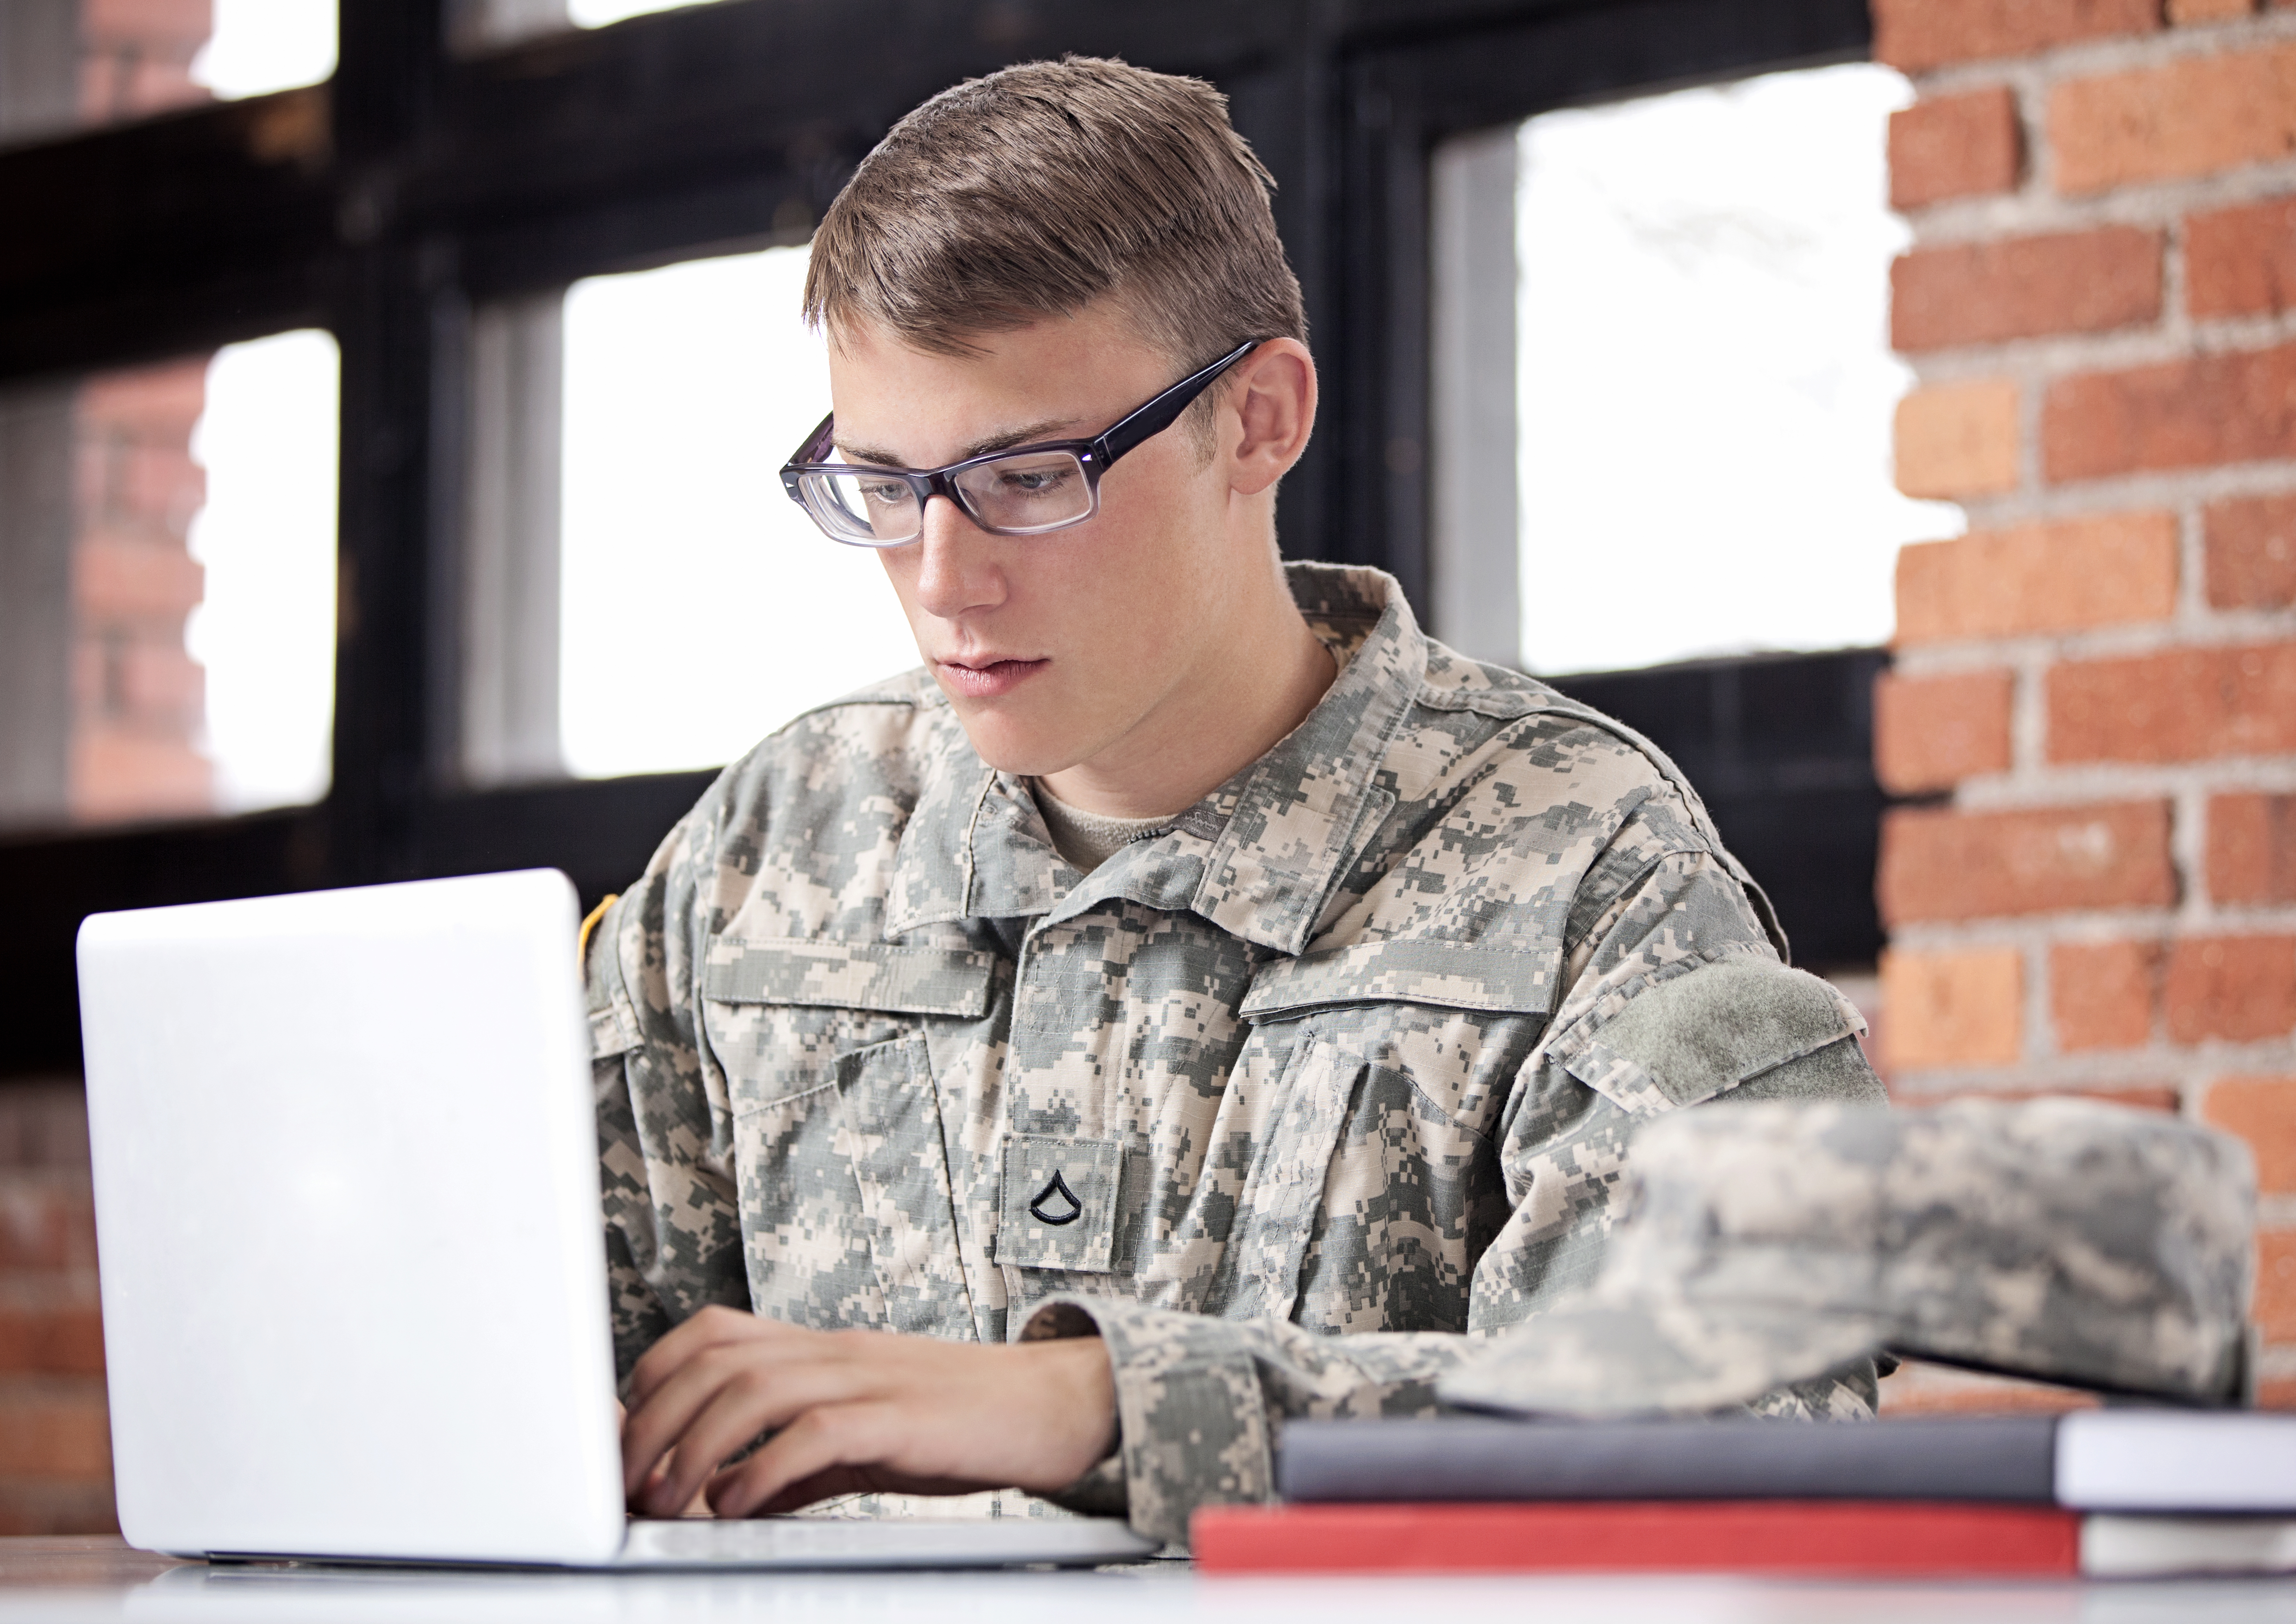 Can I Enlist in the Army if I Wear Glasses? | Career Trend